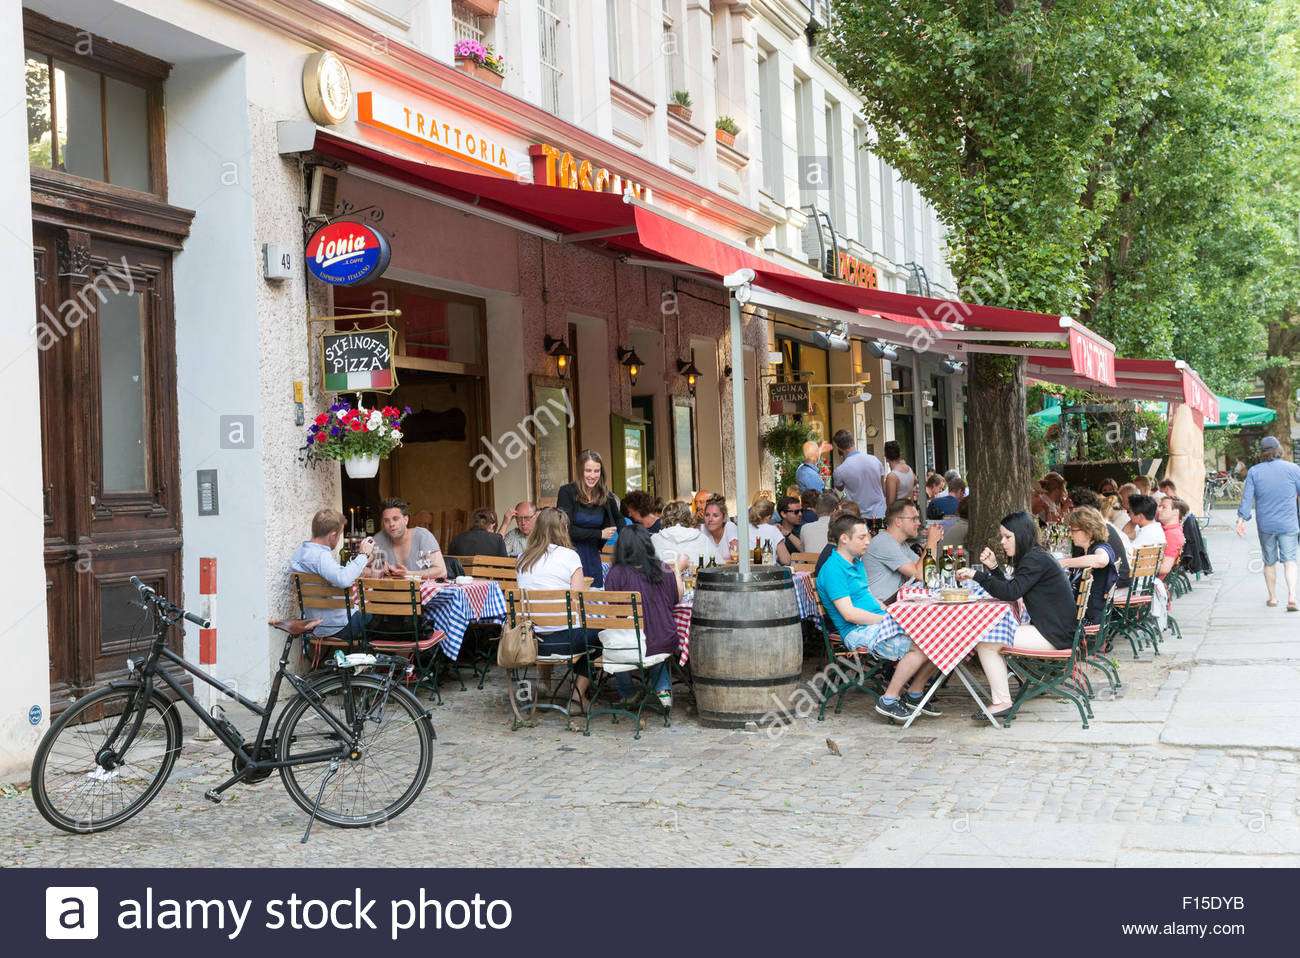 italienisches restaurant im stadtteil prenzlauer berg berlin deutschland stockfoto bild. Black Bedroom Furniture Sets. Home Design Ideas